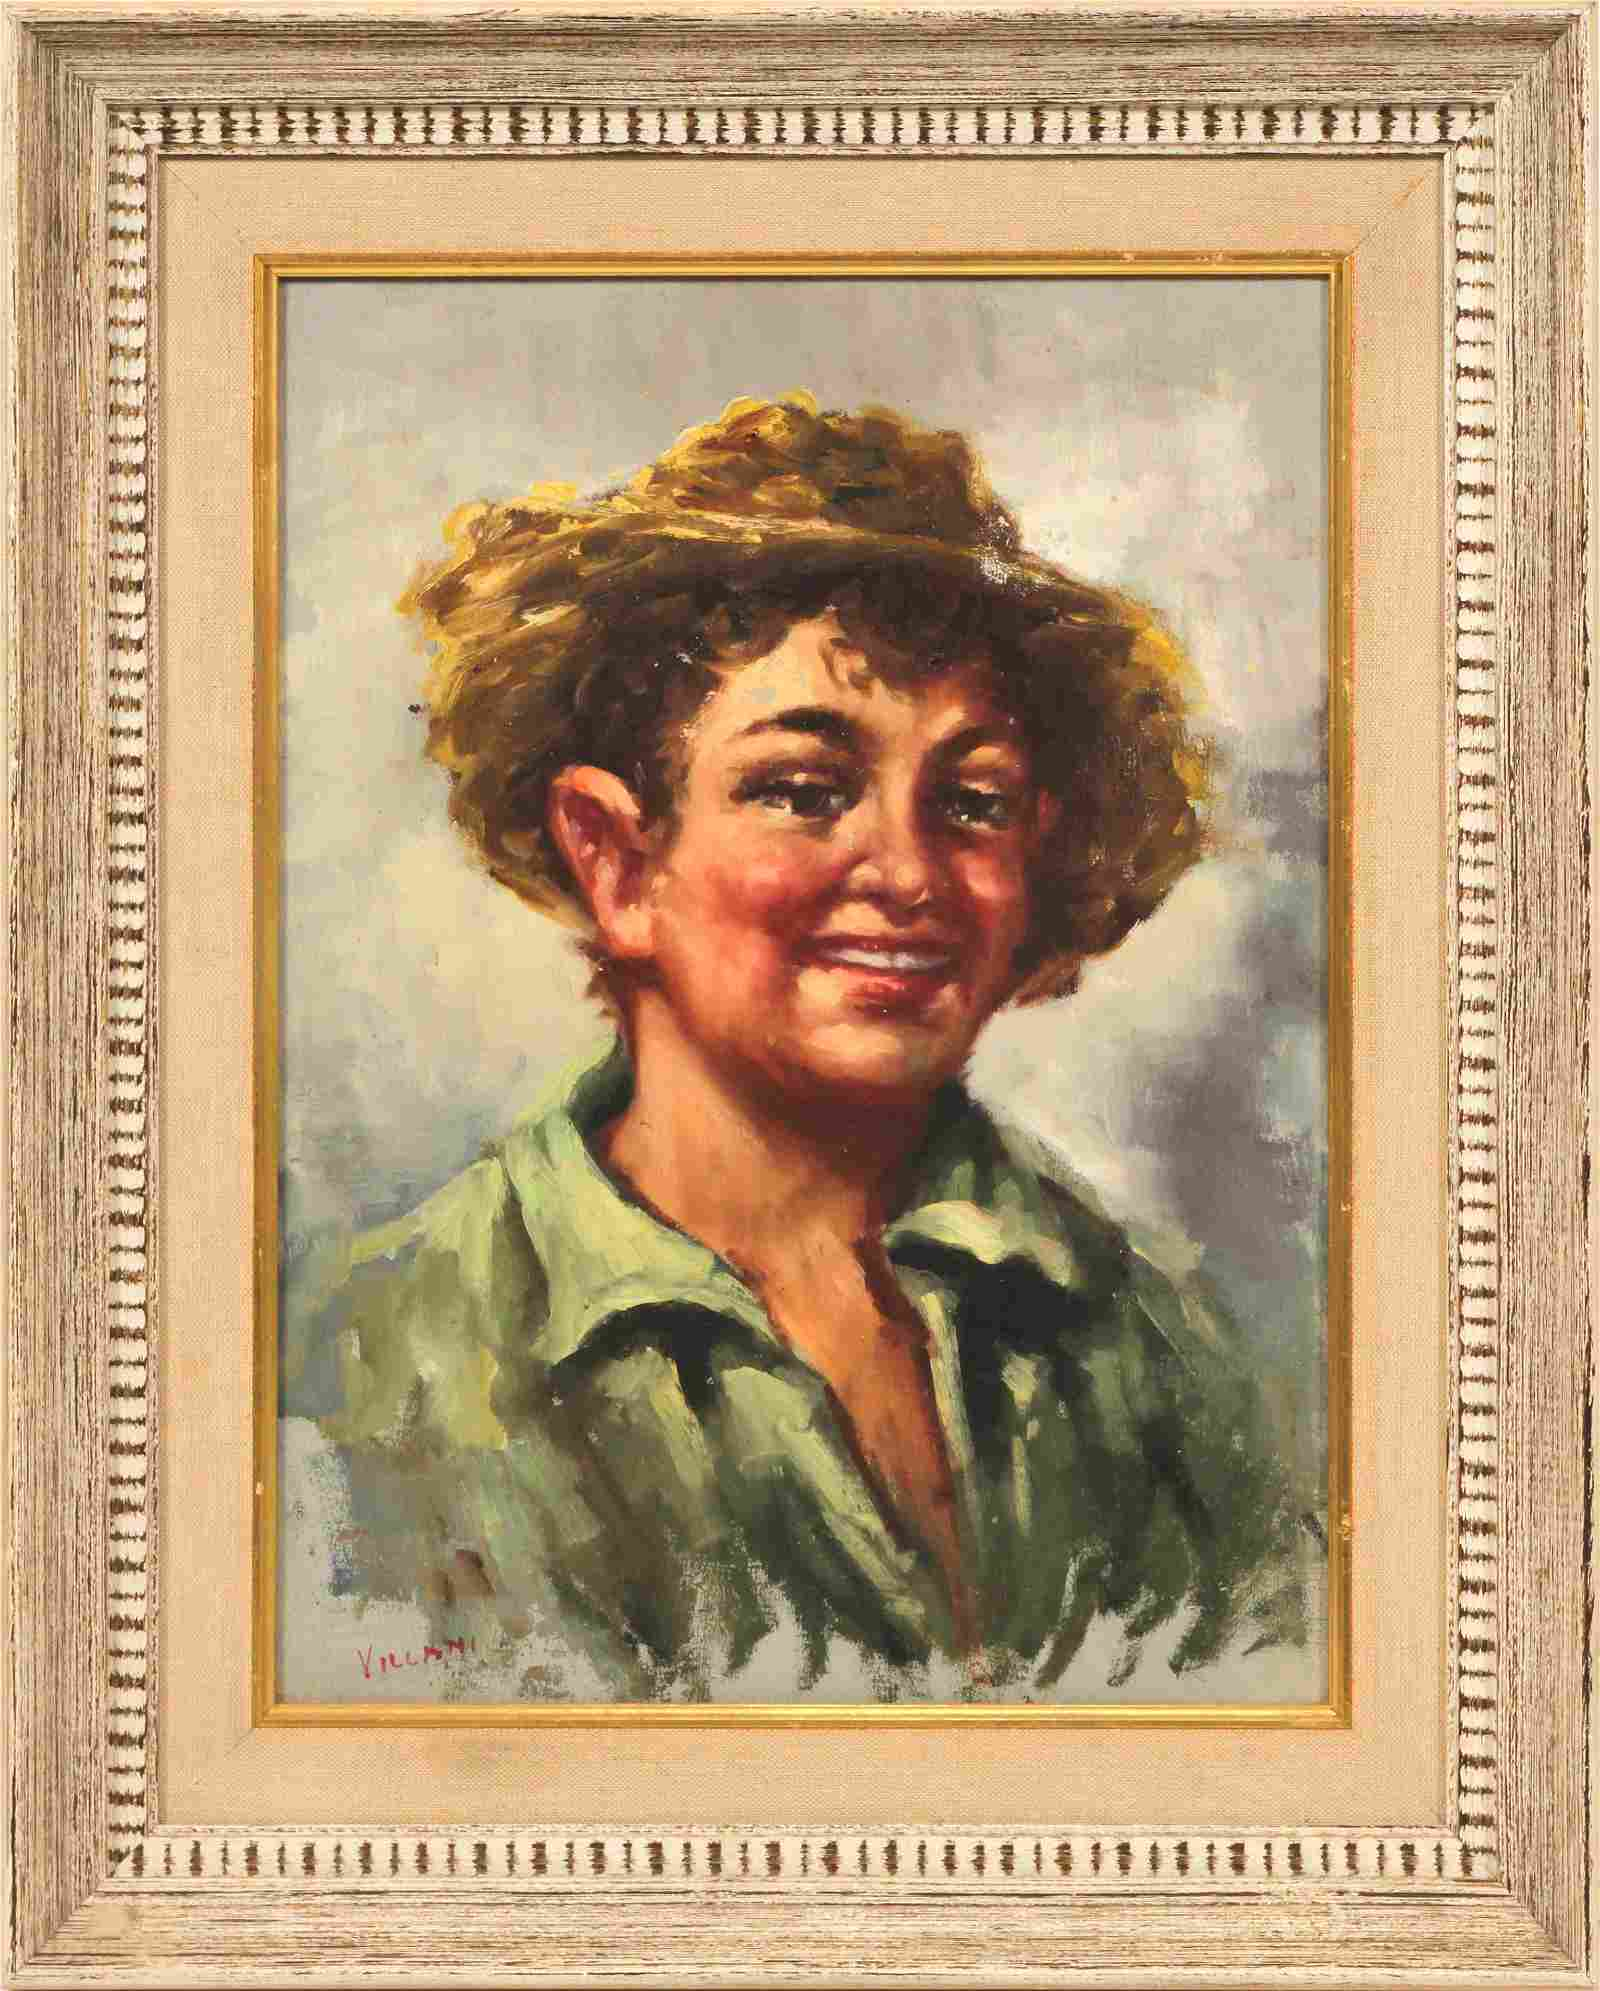 VILLANI, ITALY, LAUGHING FARM BOY WITH STRAW HAT, OIL